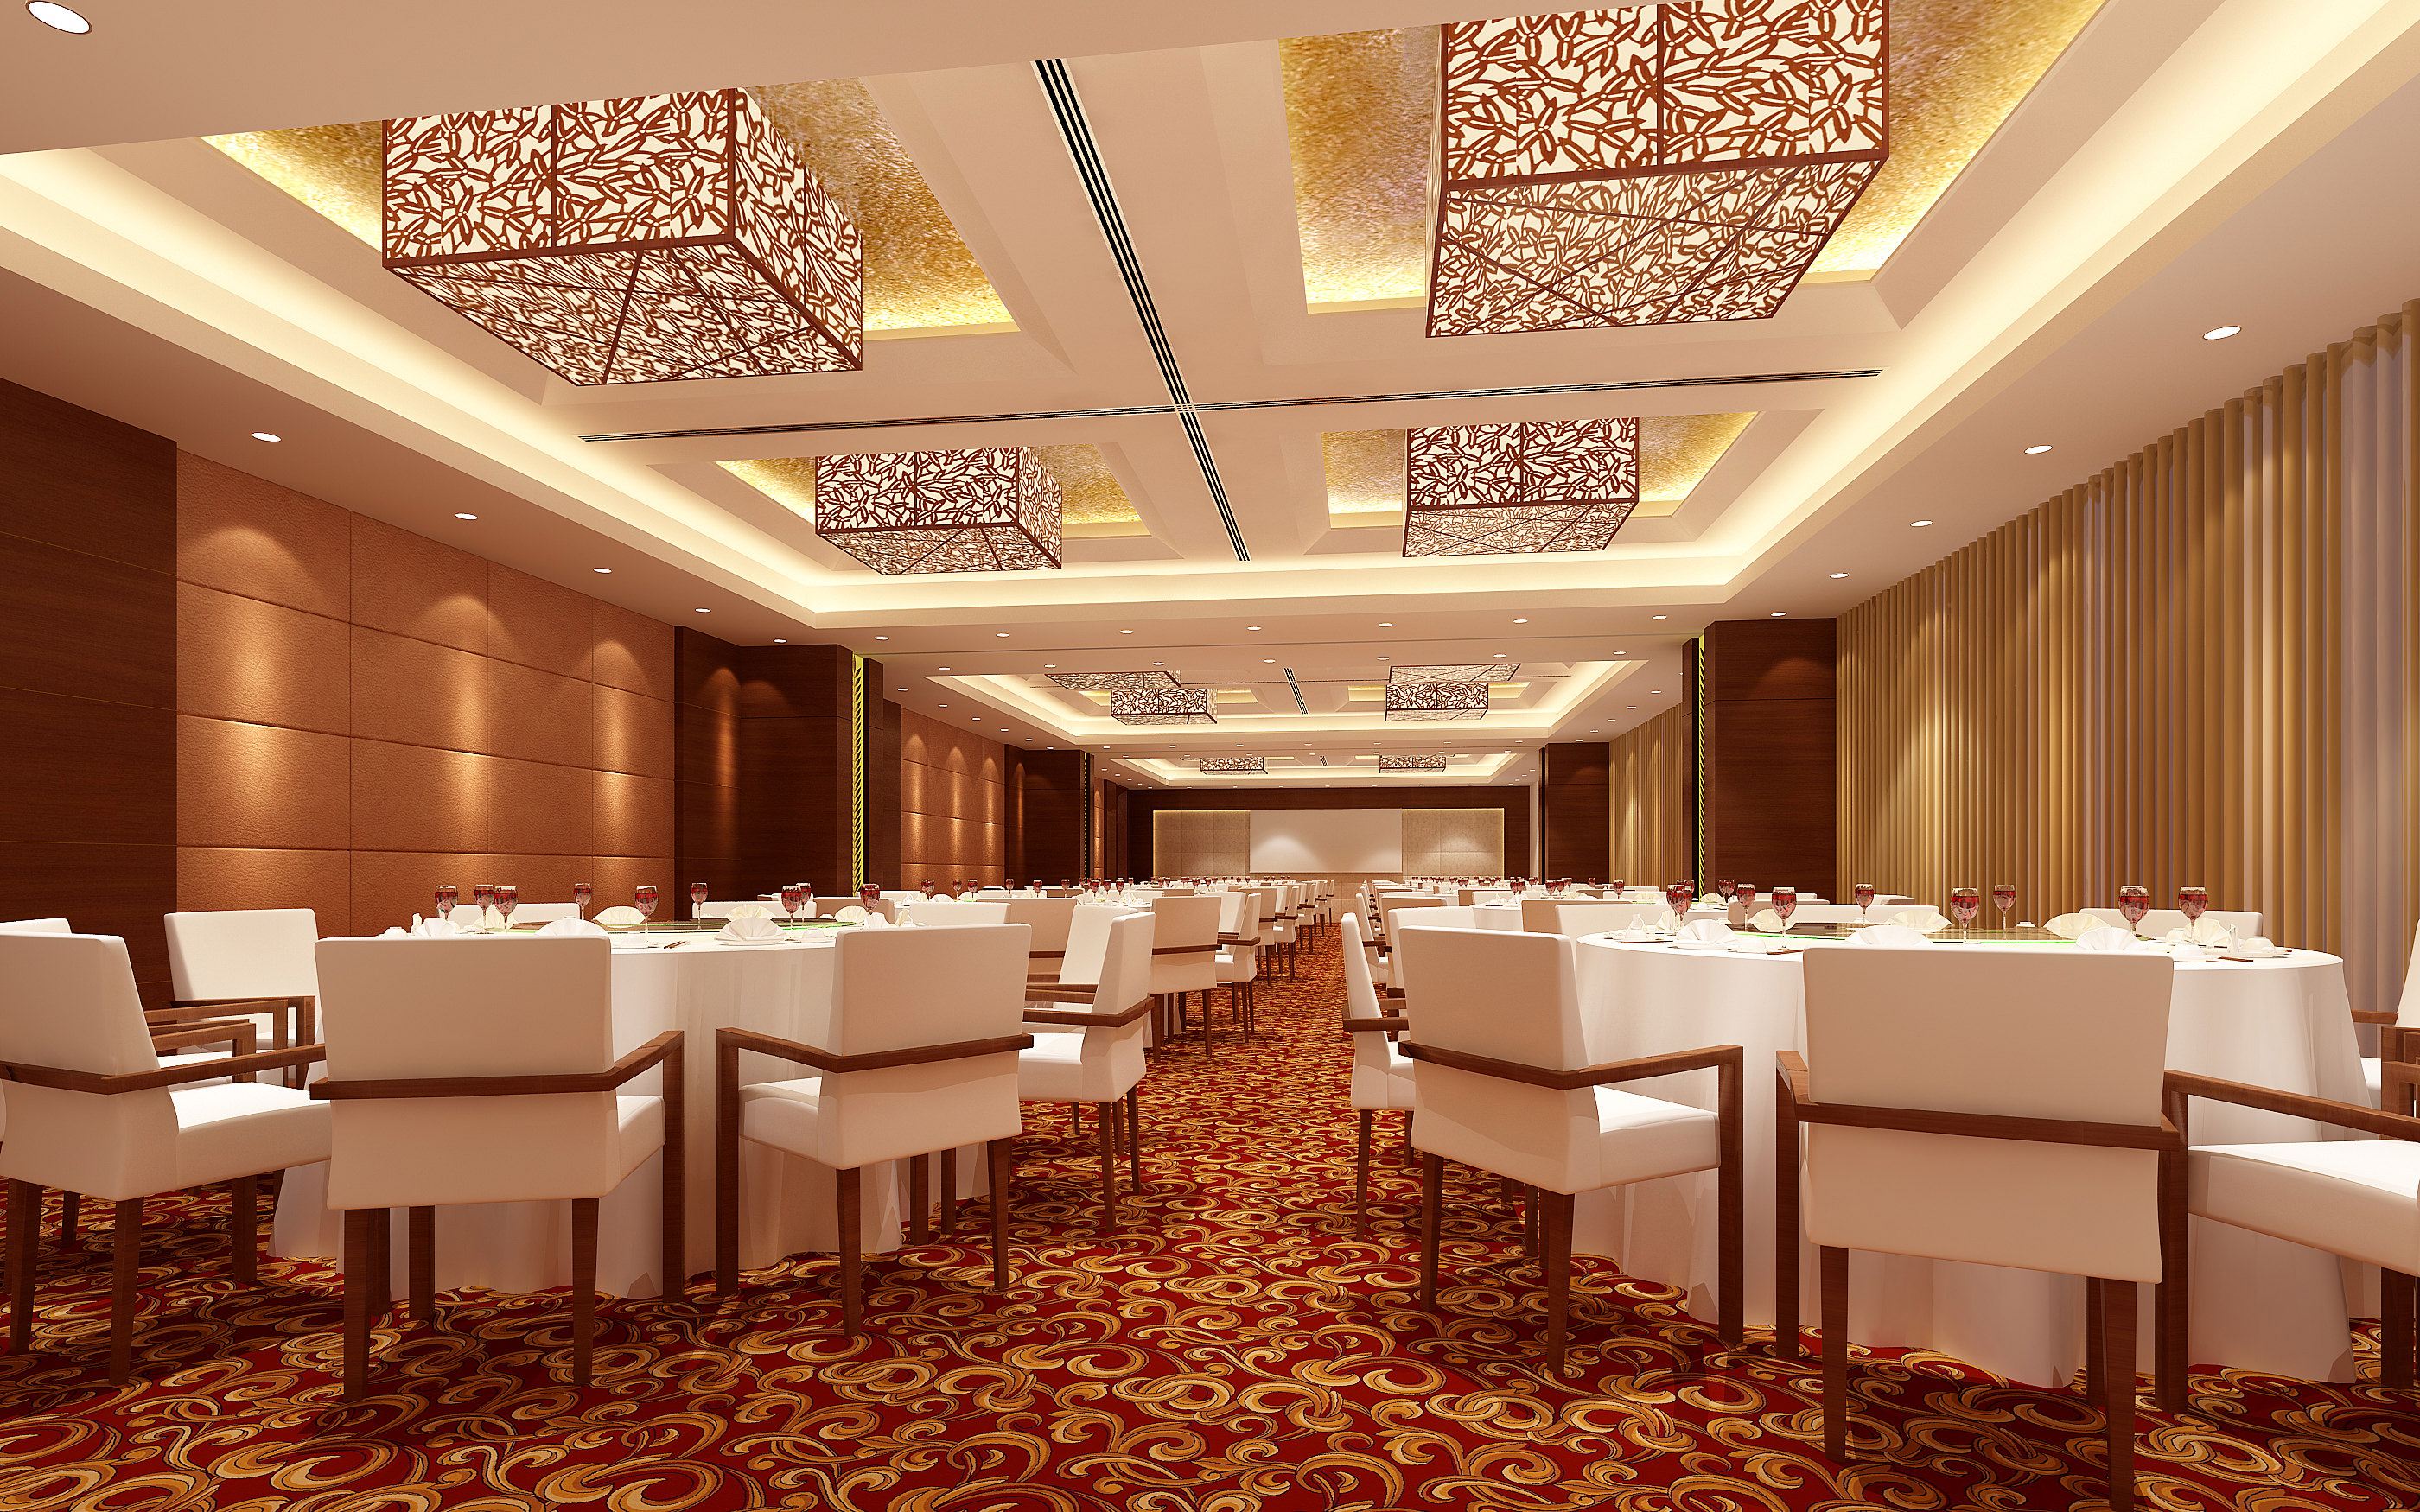 Fully carpeted classy restaurant interior d model max